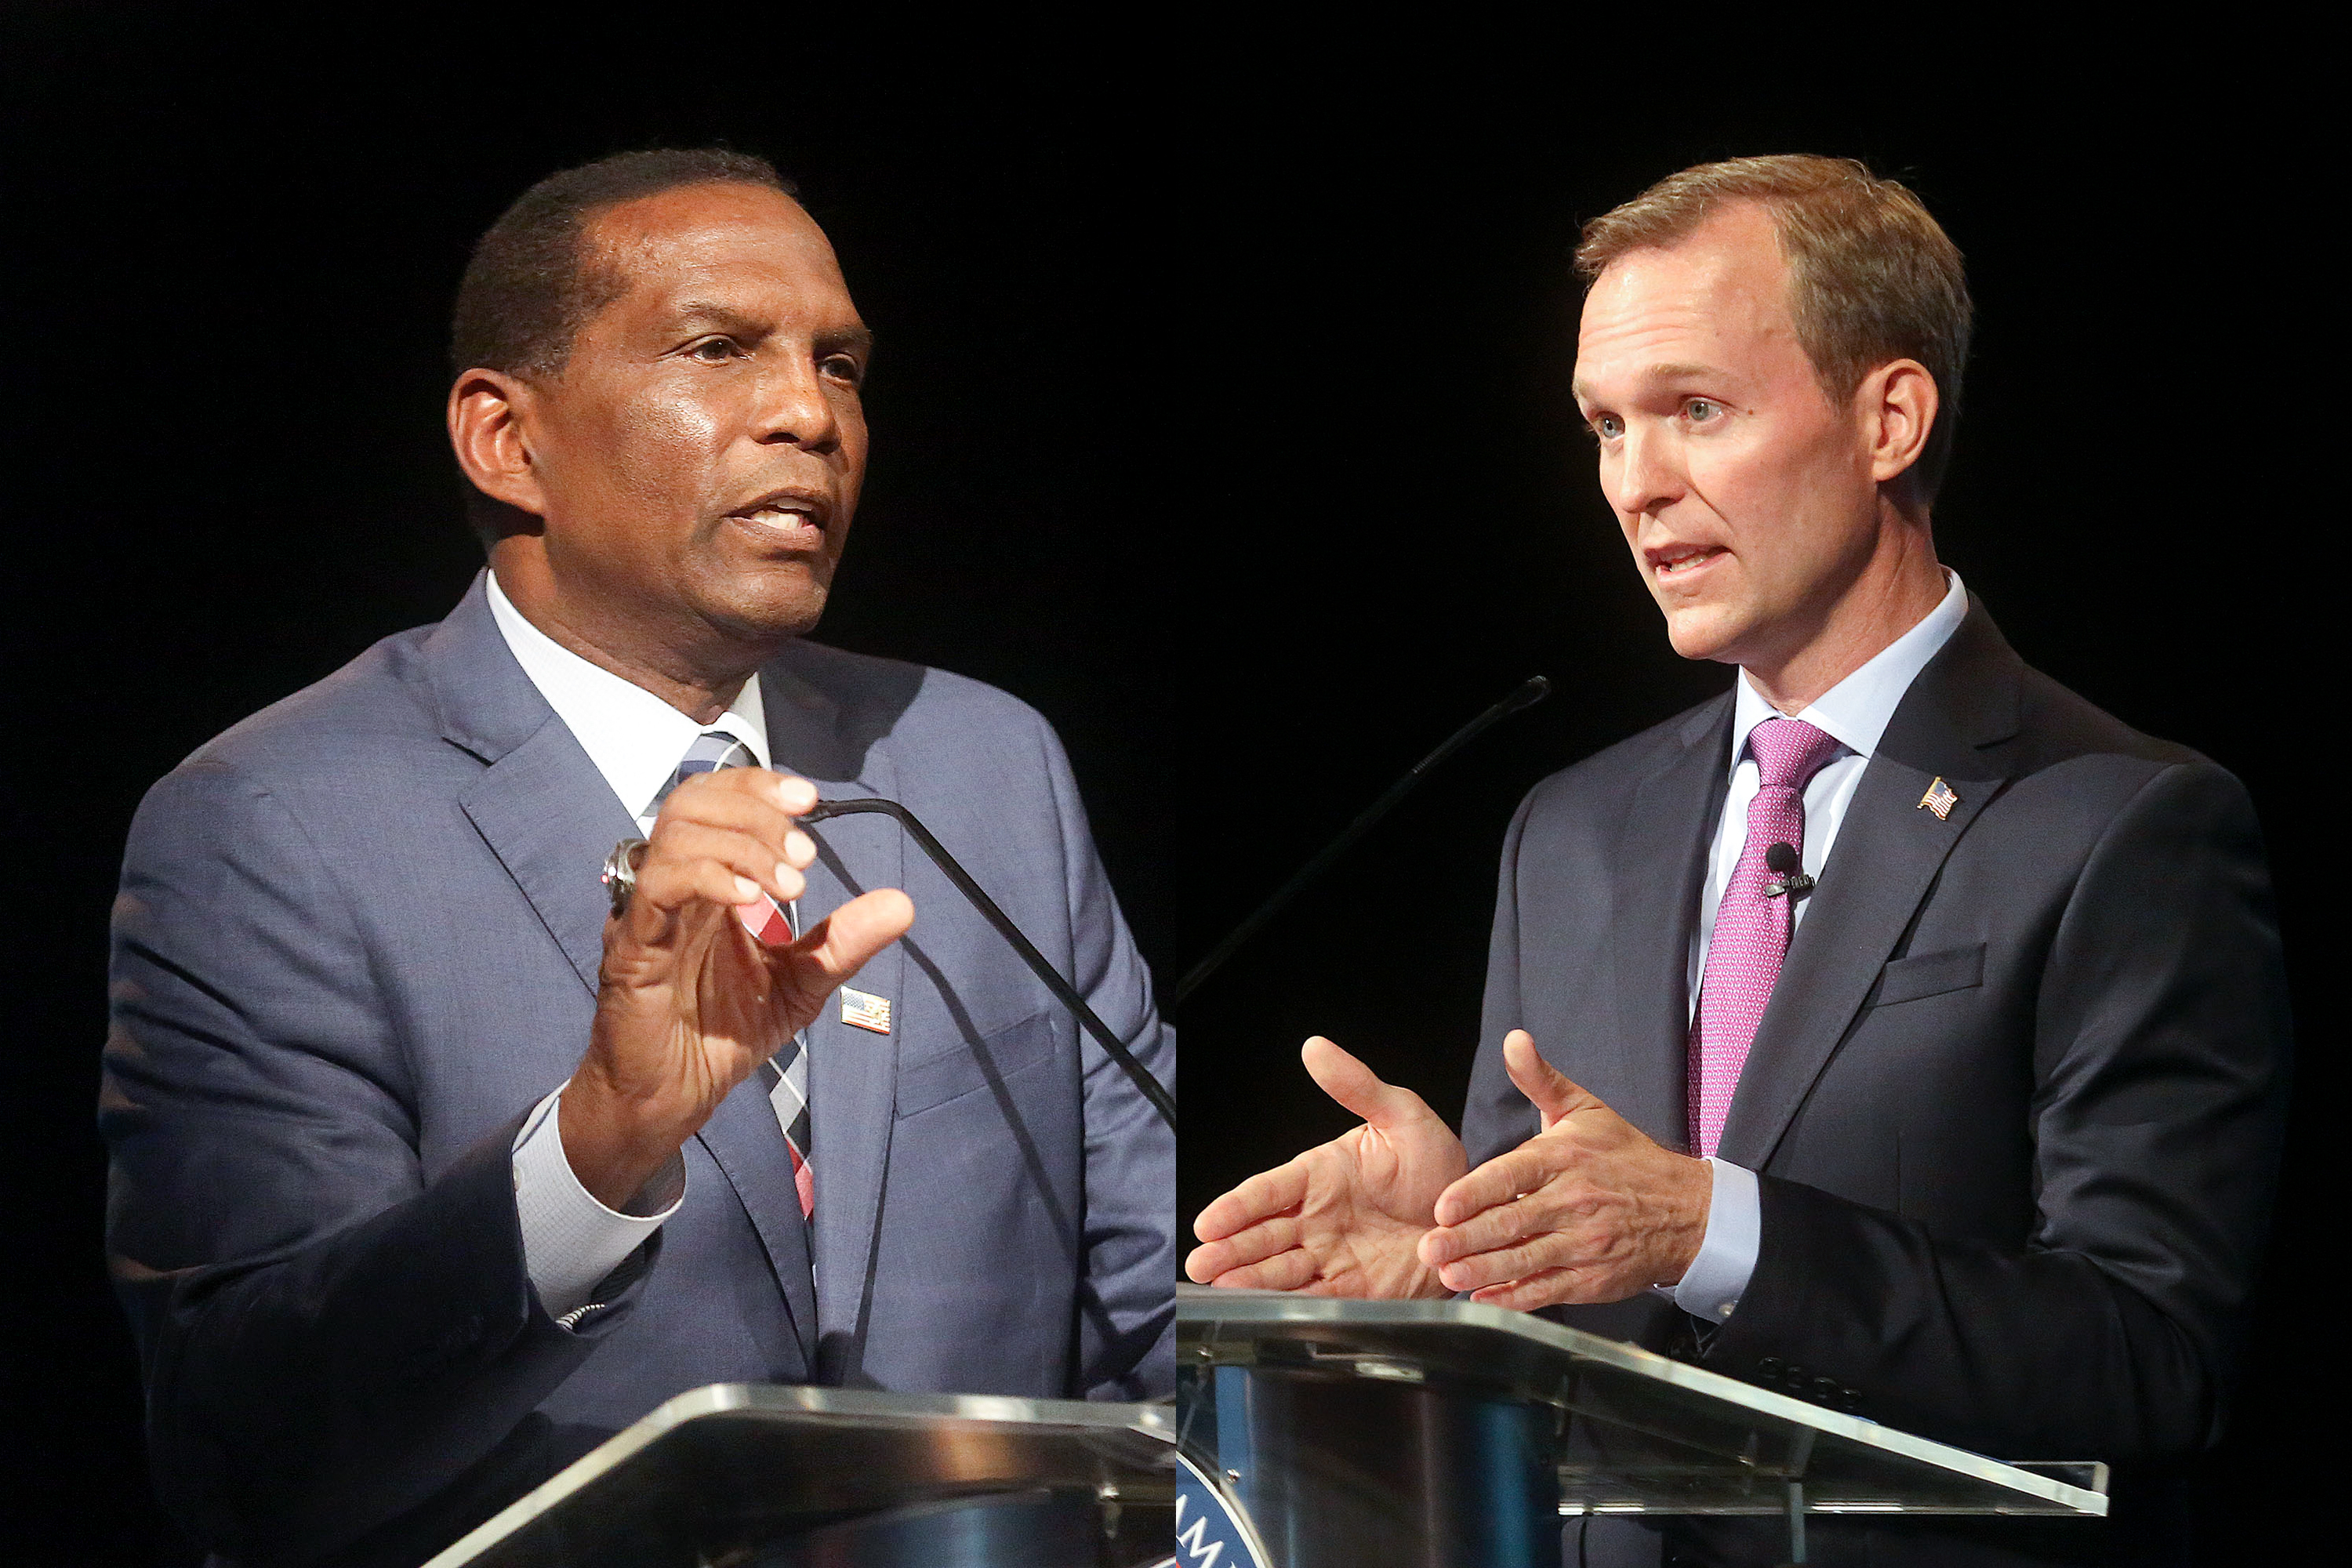 Republican Burgess Owens, left, and Rep. Ben McAdams, D-Utah, participate in the 4th Congressional District debate at the Triad Center in Salt Lake City on Monday, Oct. 12, 2020 in this composite image.